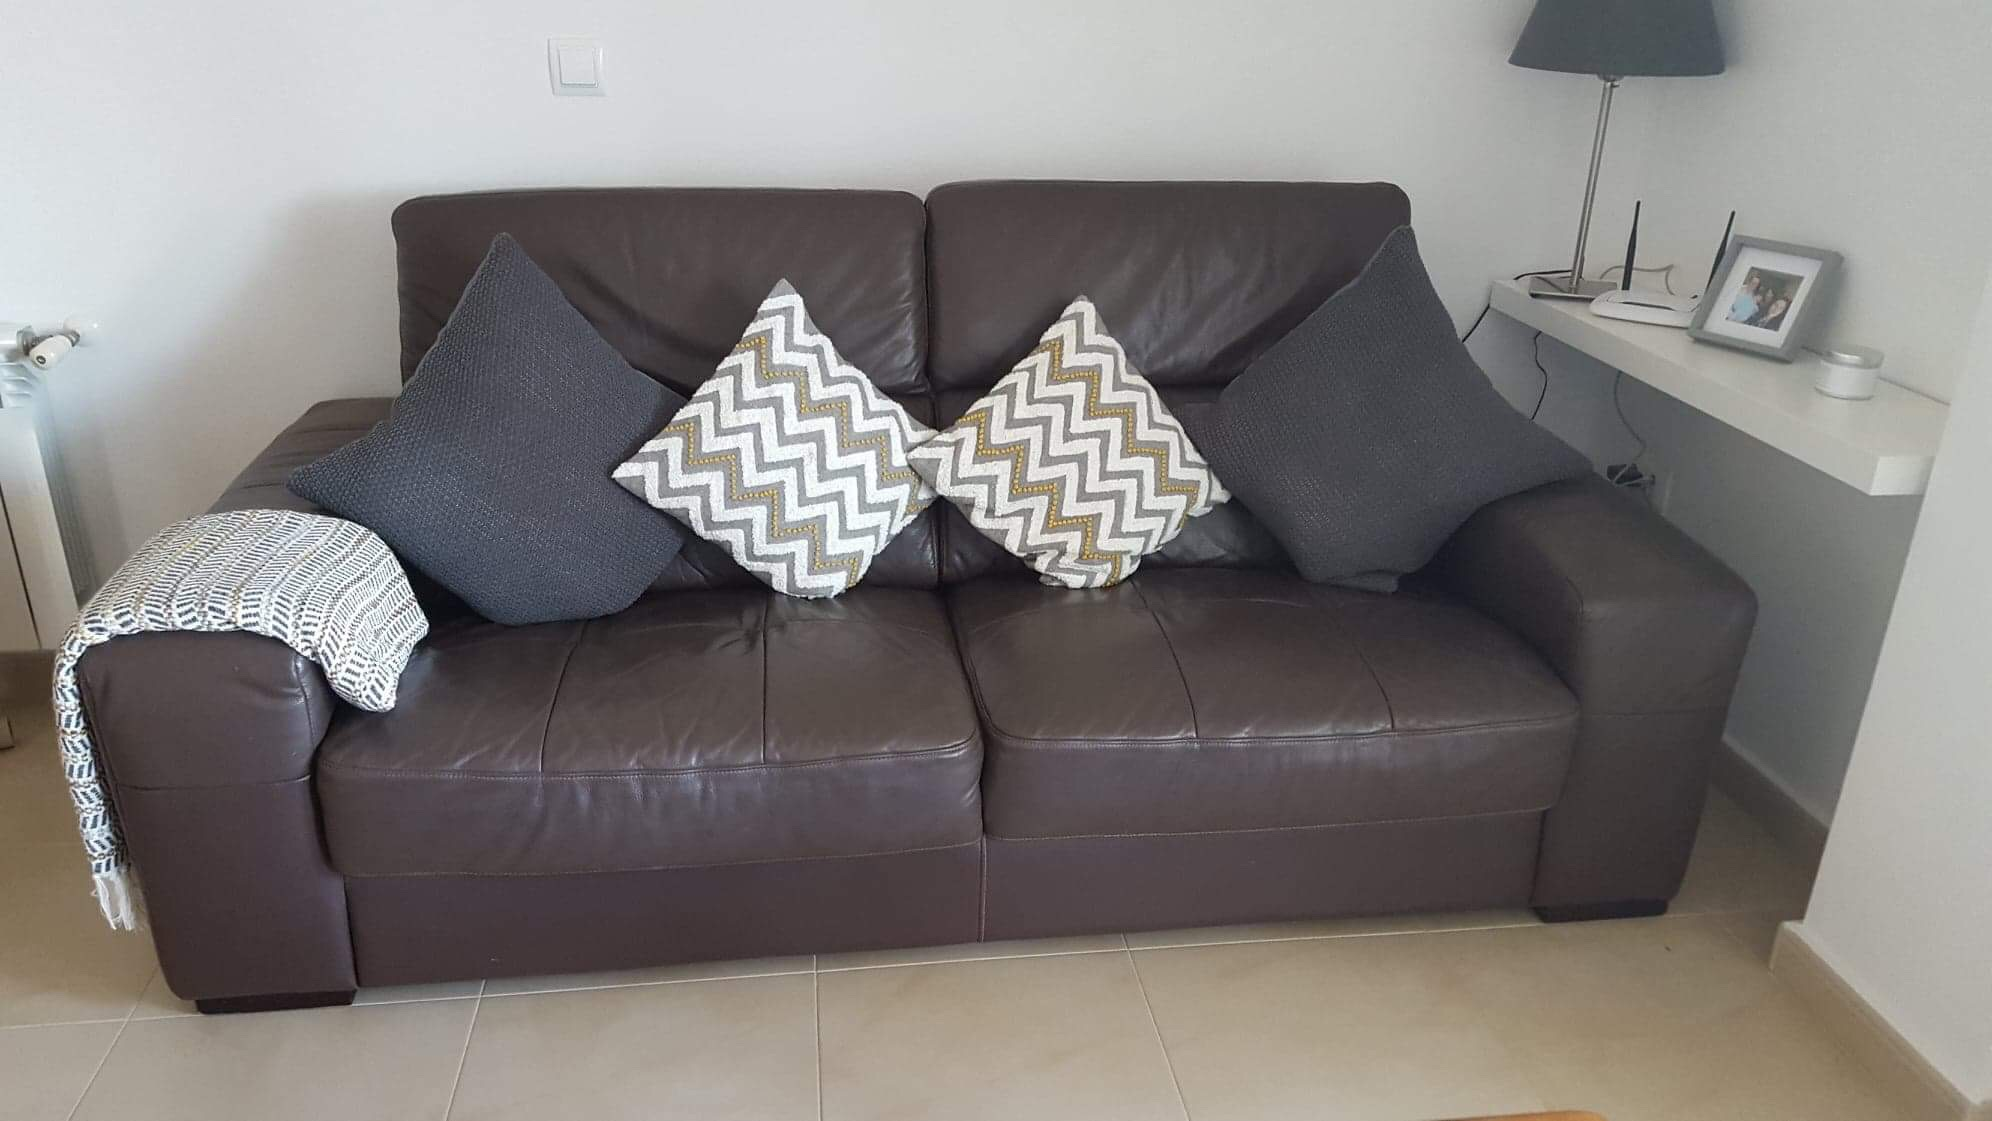 For sale: Brown 2/3 seater leather sofa